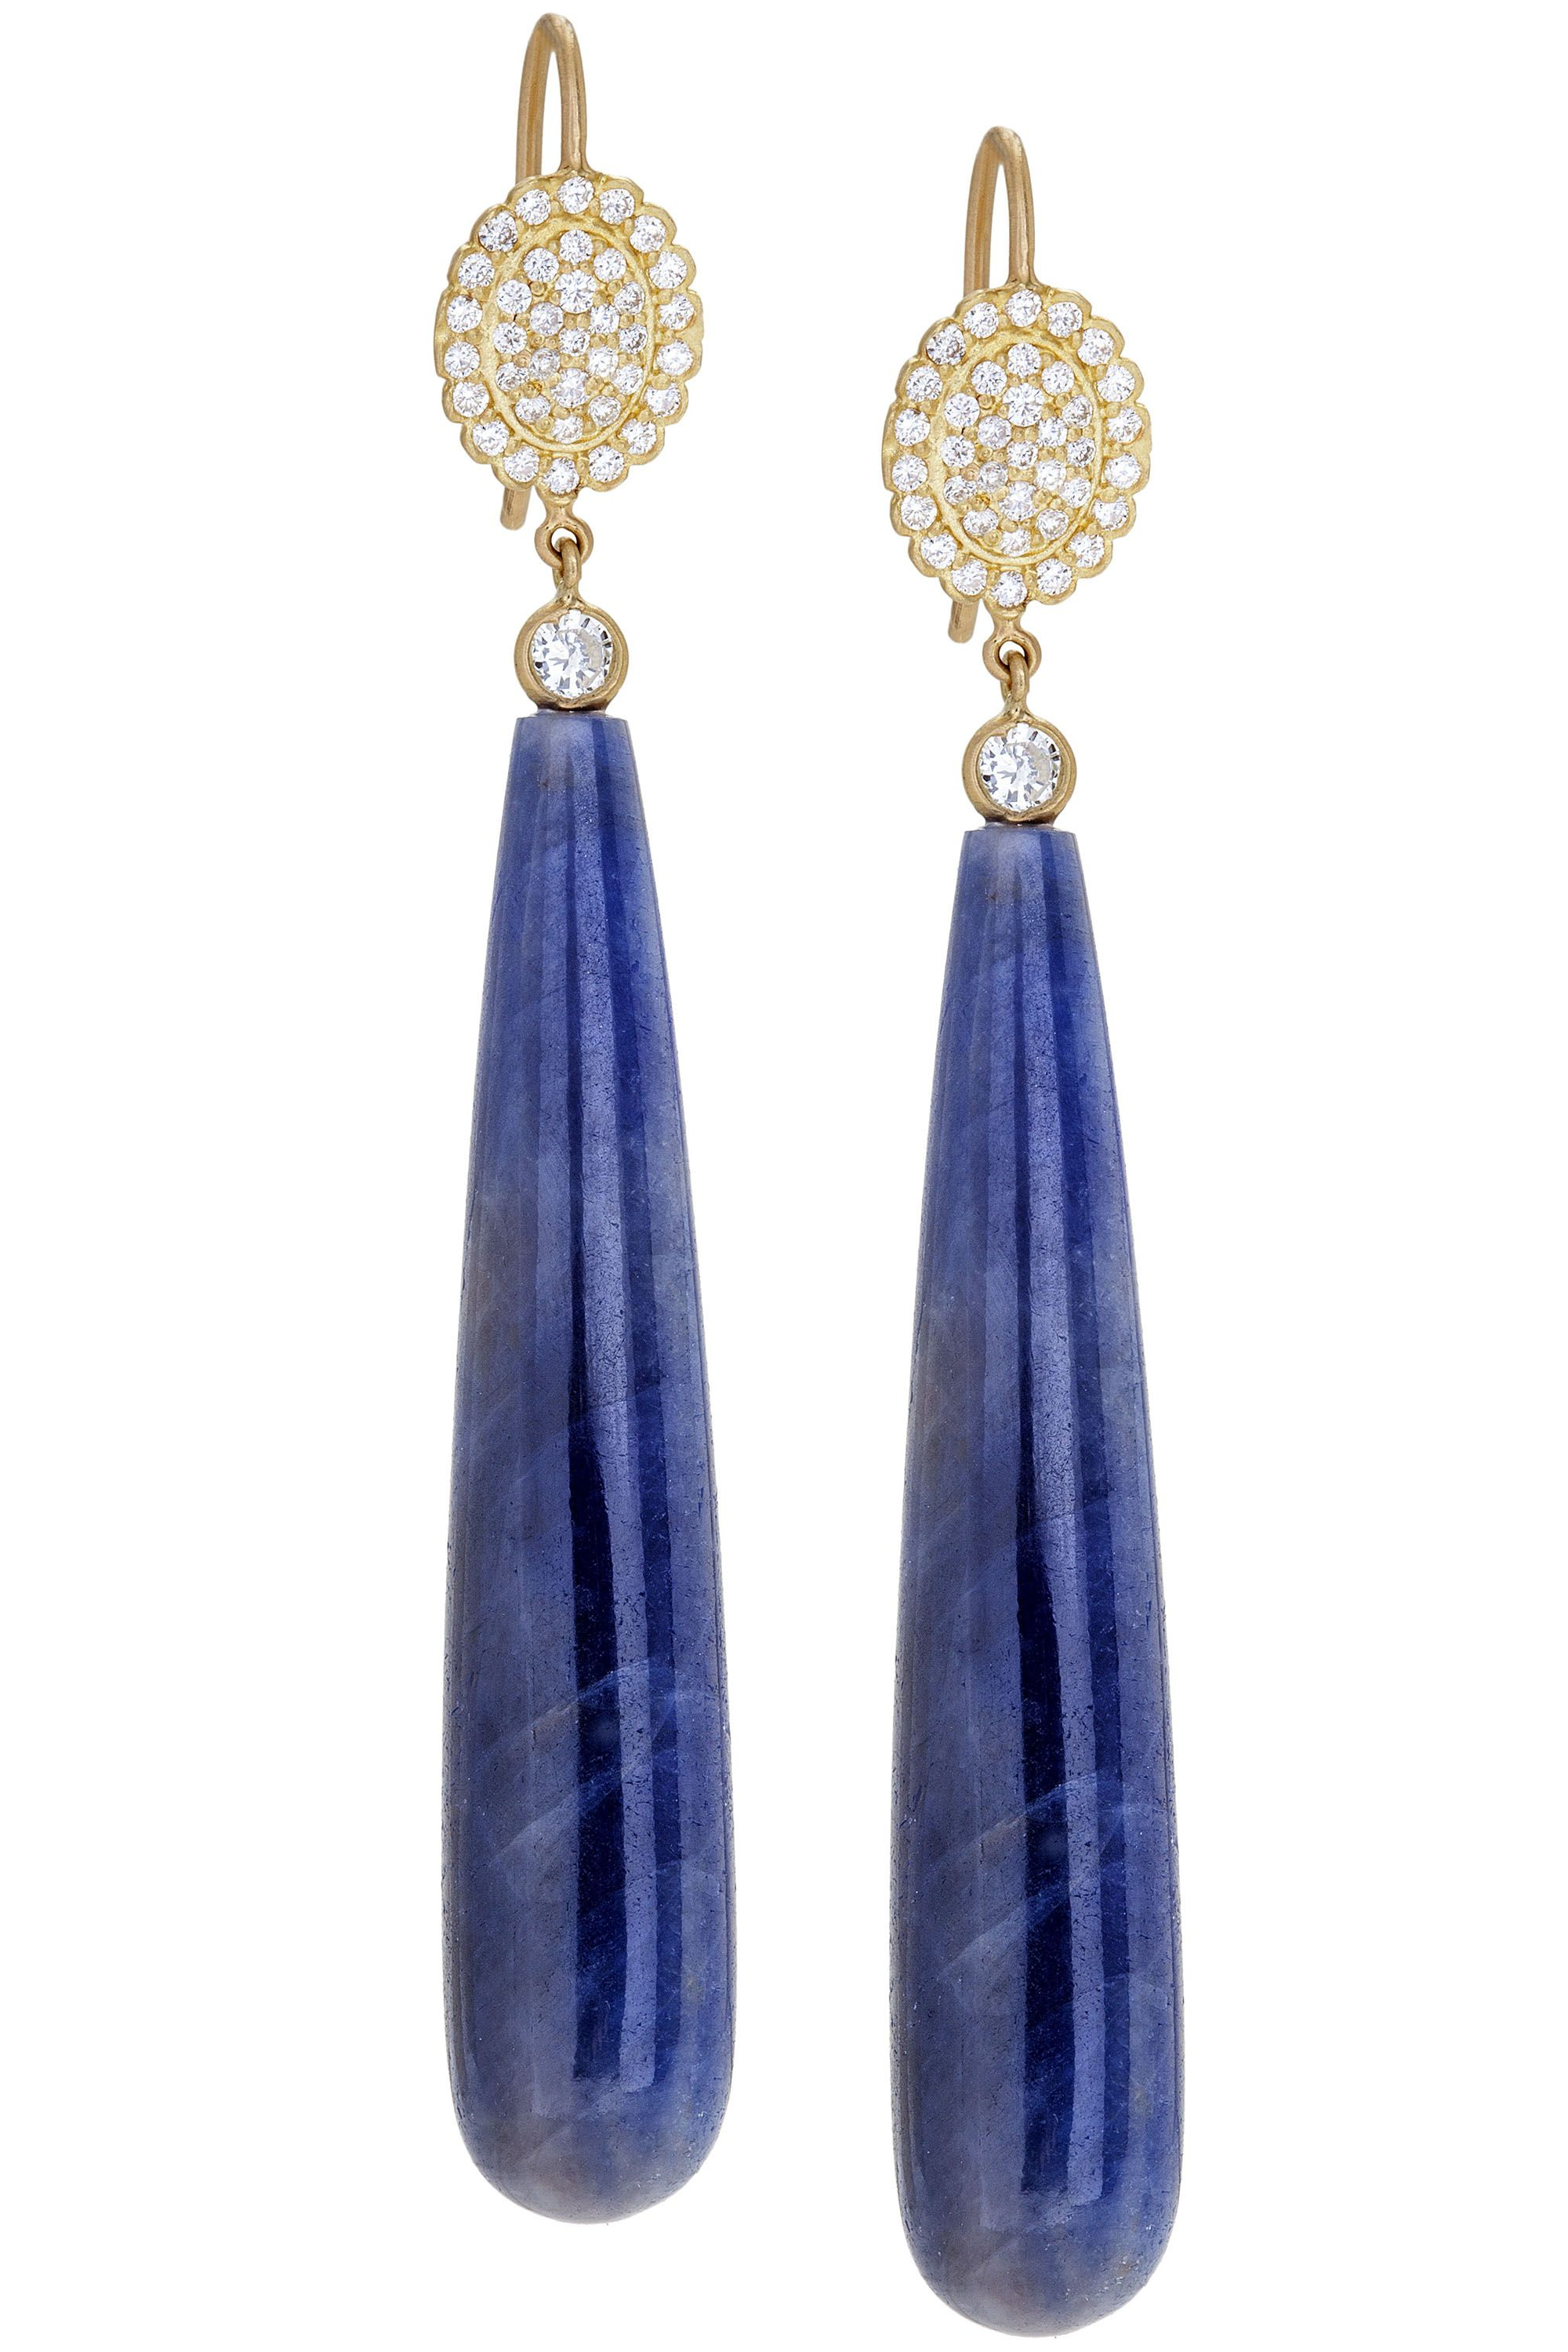 "<strong>Jamie Wolf </strong>earrings, $4,950, <a target=""_blank"" href=""http://jamiewolf.com/collections/earrings?page=2"">jamiewolf.com</a>."